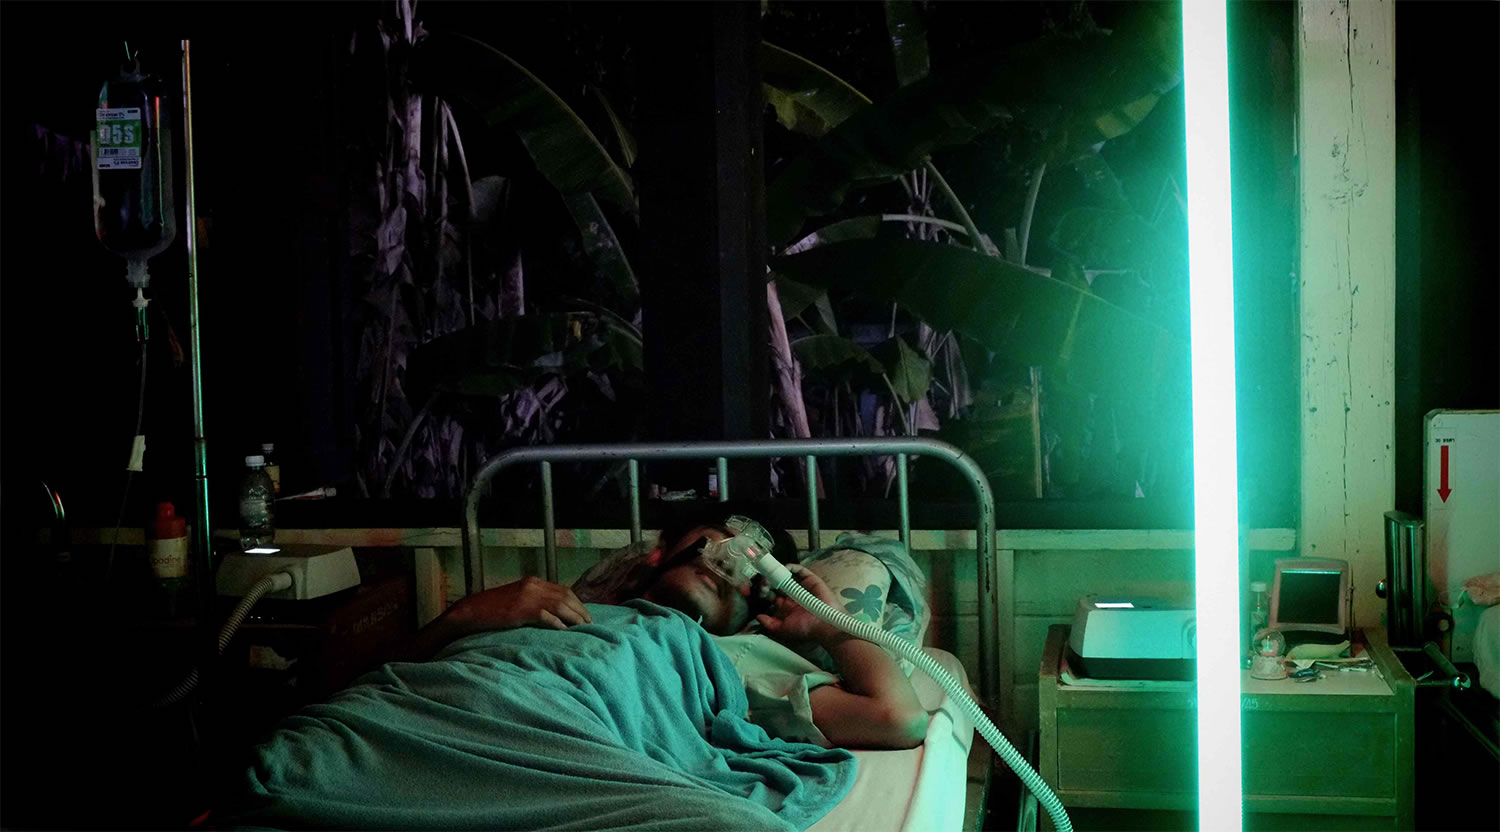 patient in sick bed, neon lights in cemetery of splendour